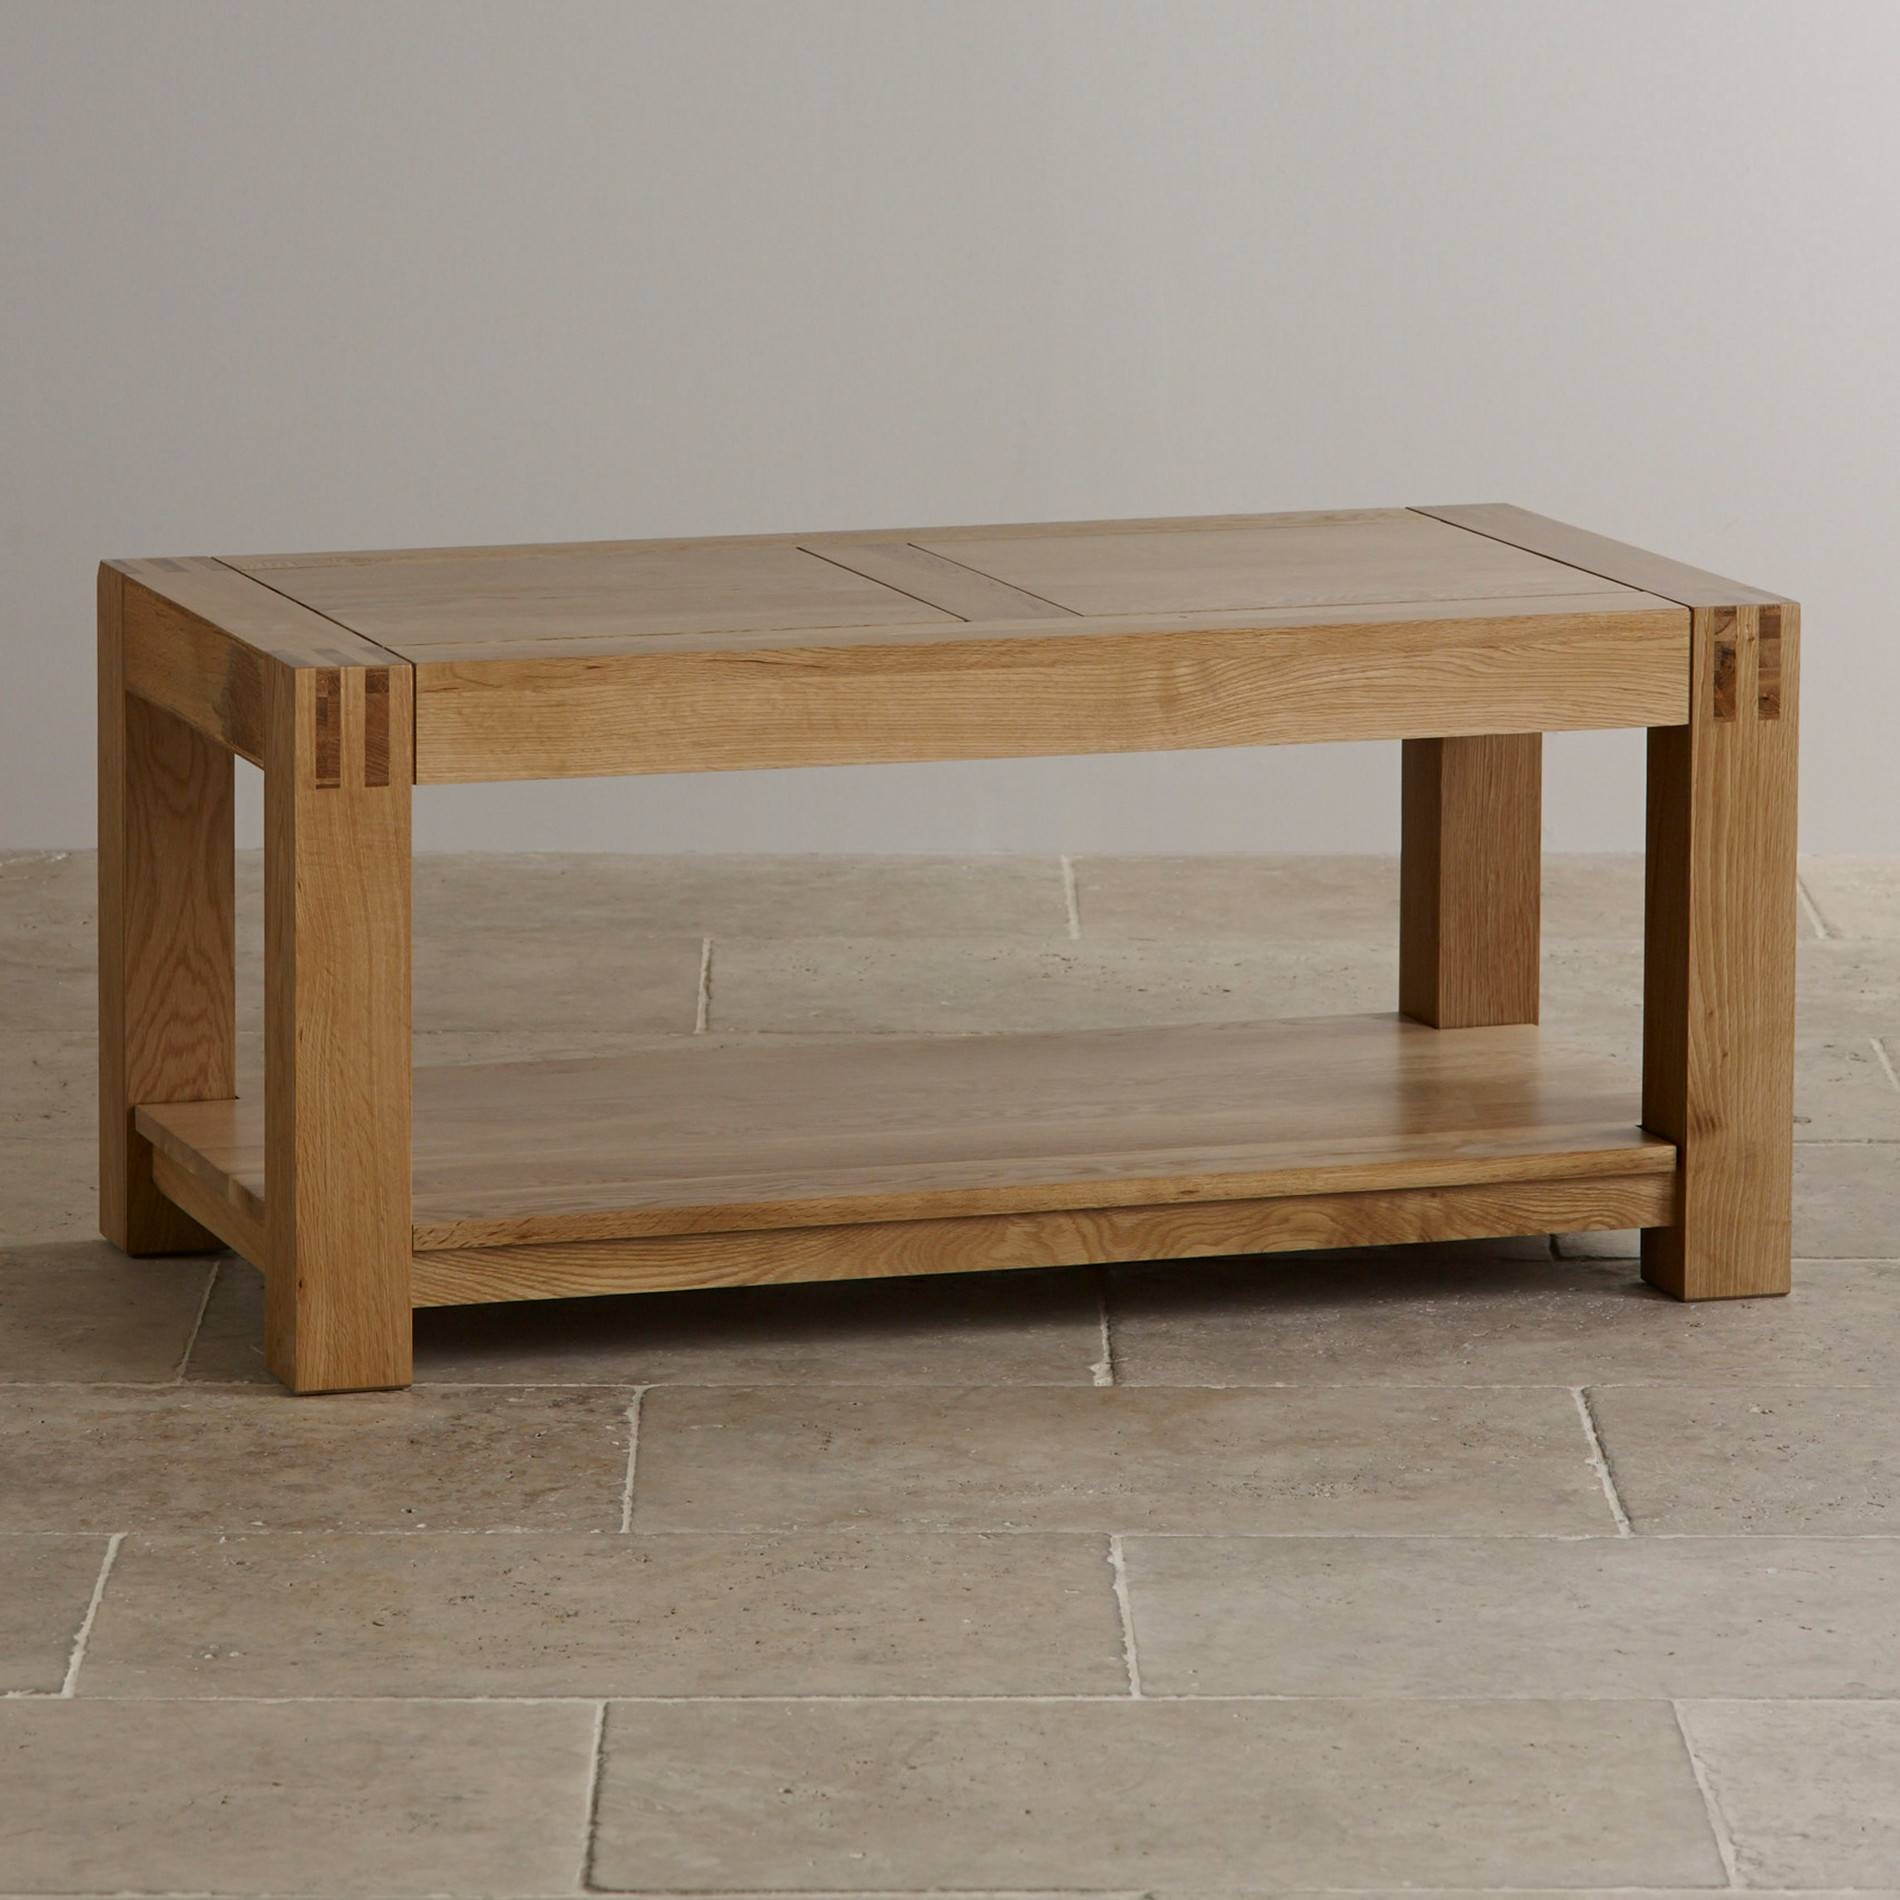 Solid Oak Coffee Table With Shelf | Coffee Tables Decoration regarding Oak Coffee Tables With Shelf (Image 27 of 30)